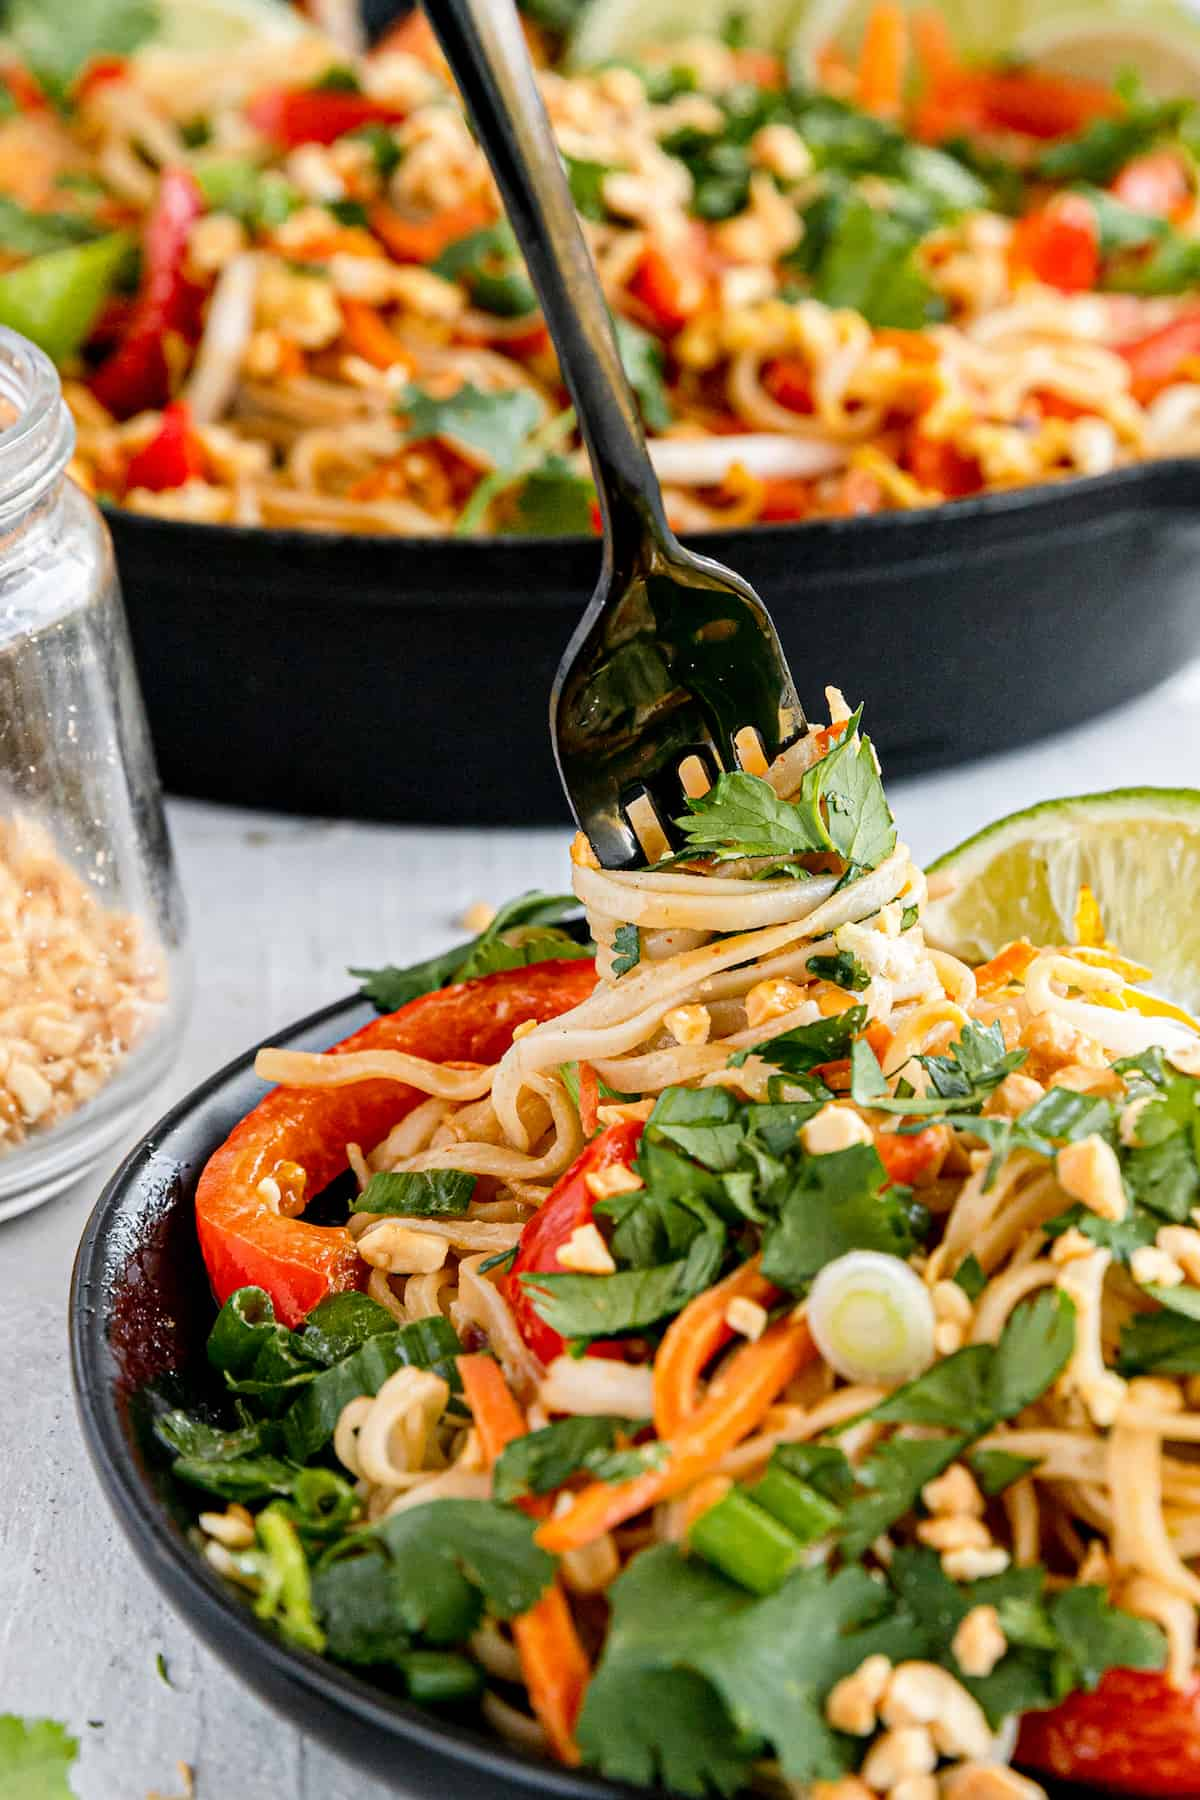 A Close-Up Shot of a Fork Digging Into a Plate of Pad Thai